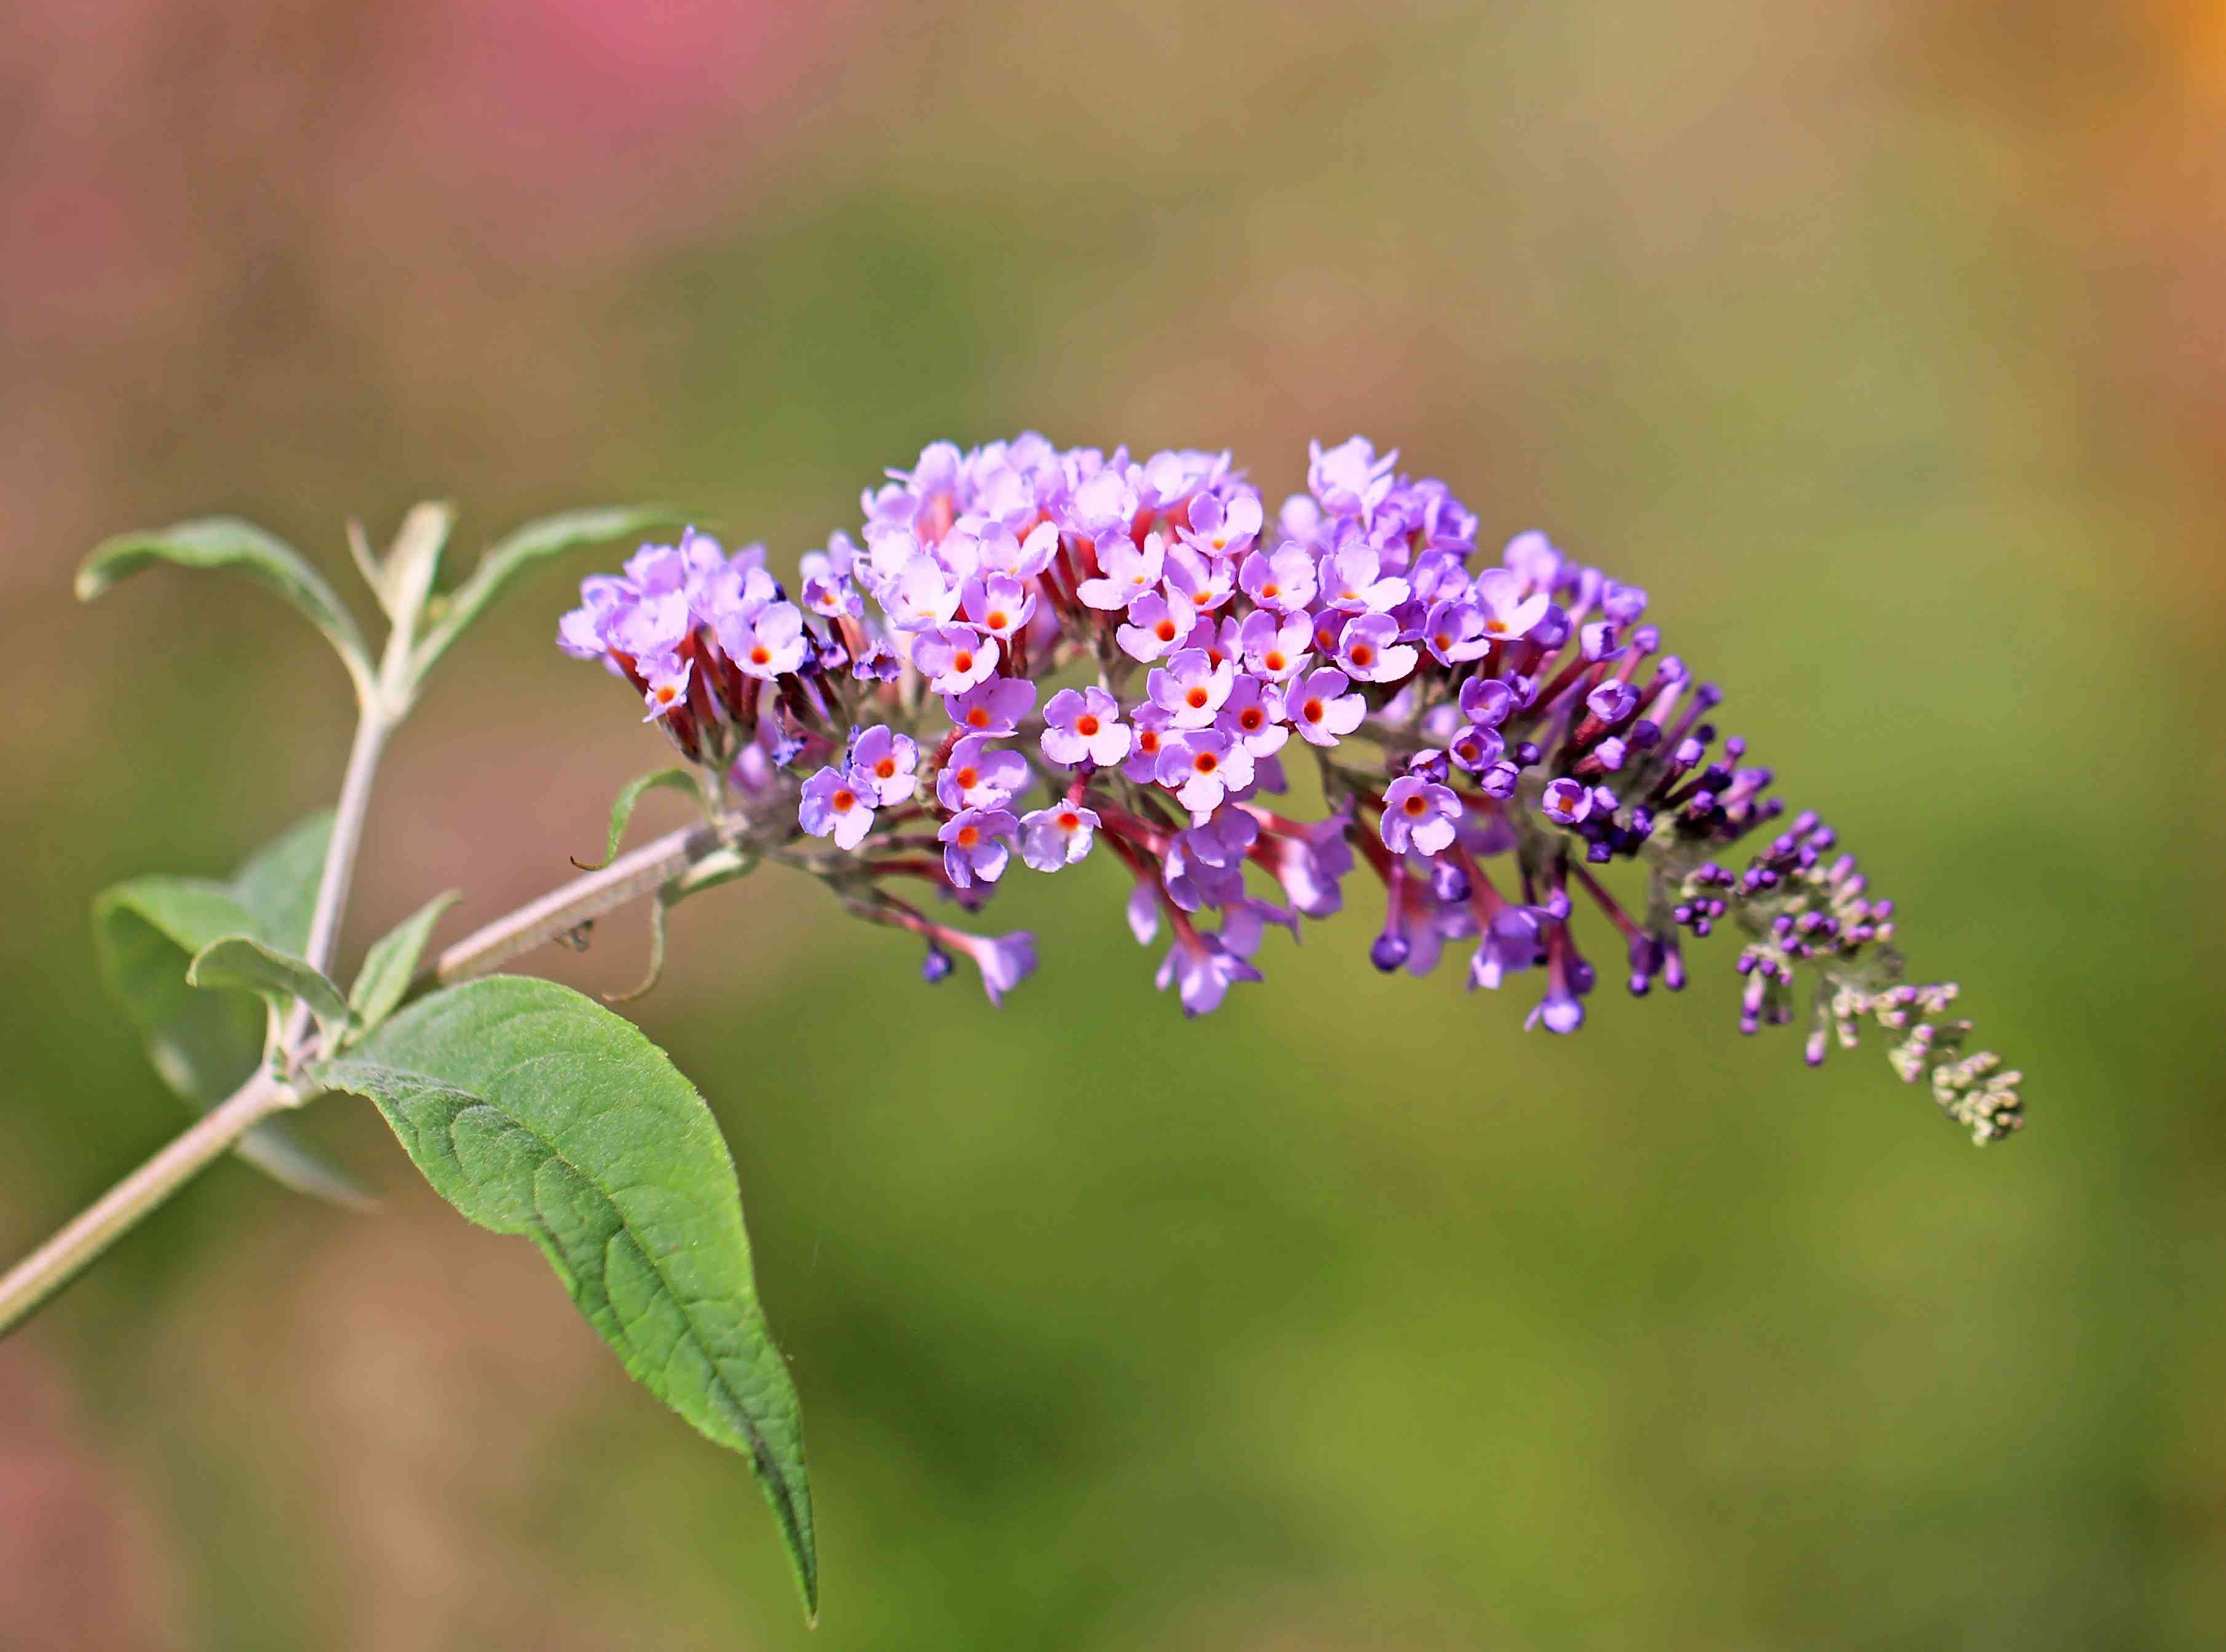 Buddleja or Buddleia, common name is butterfly bush